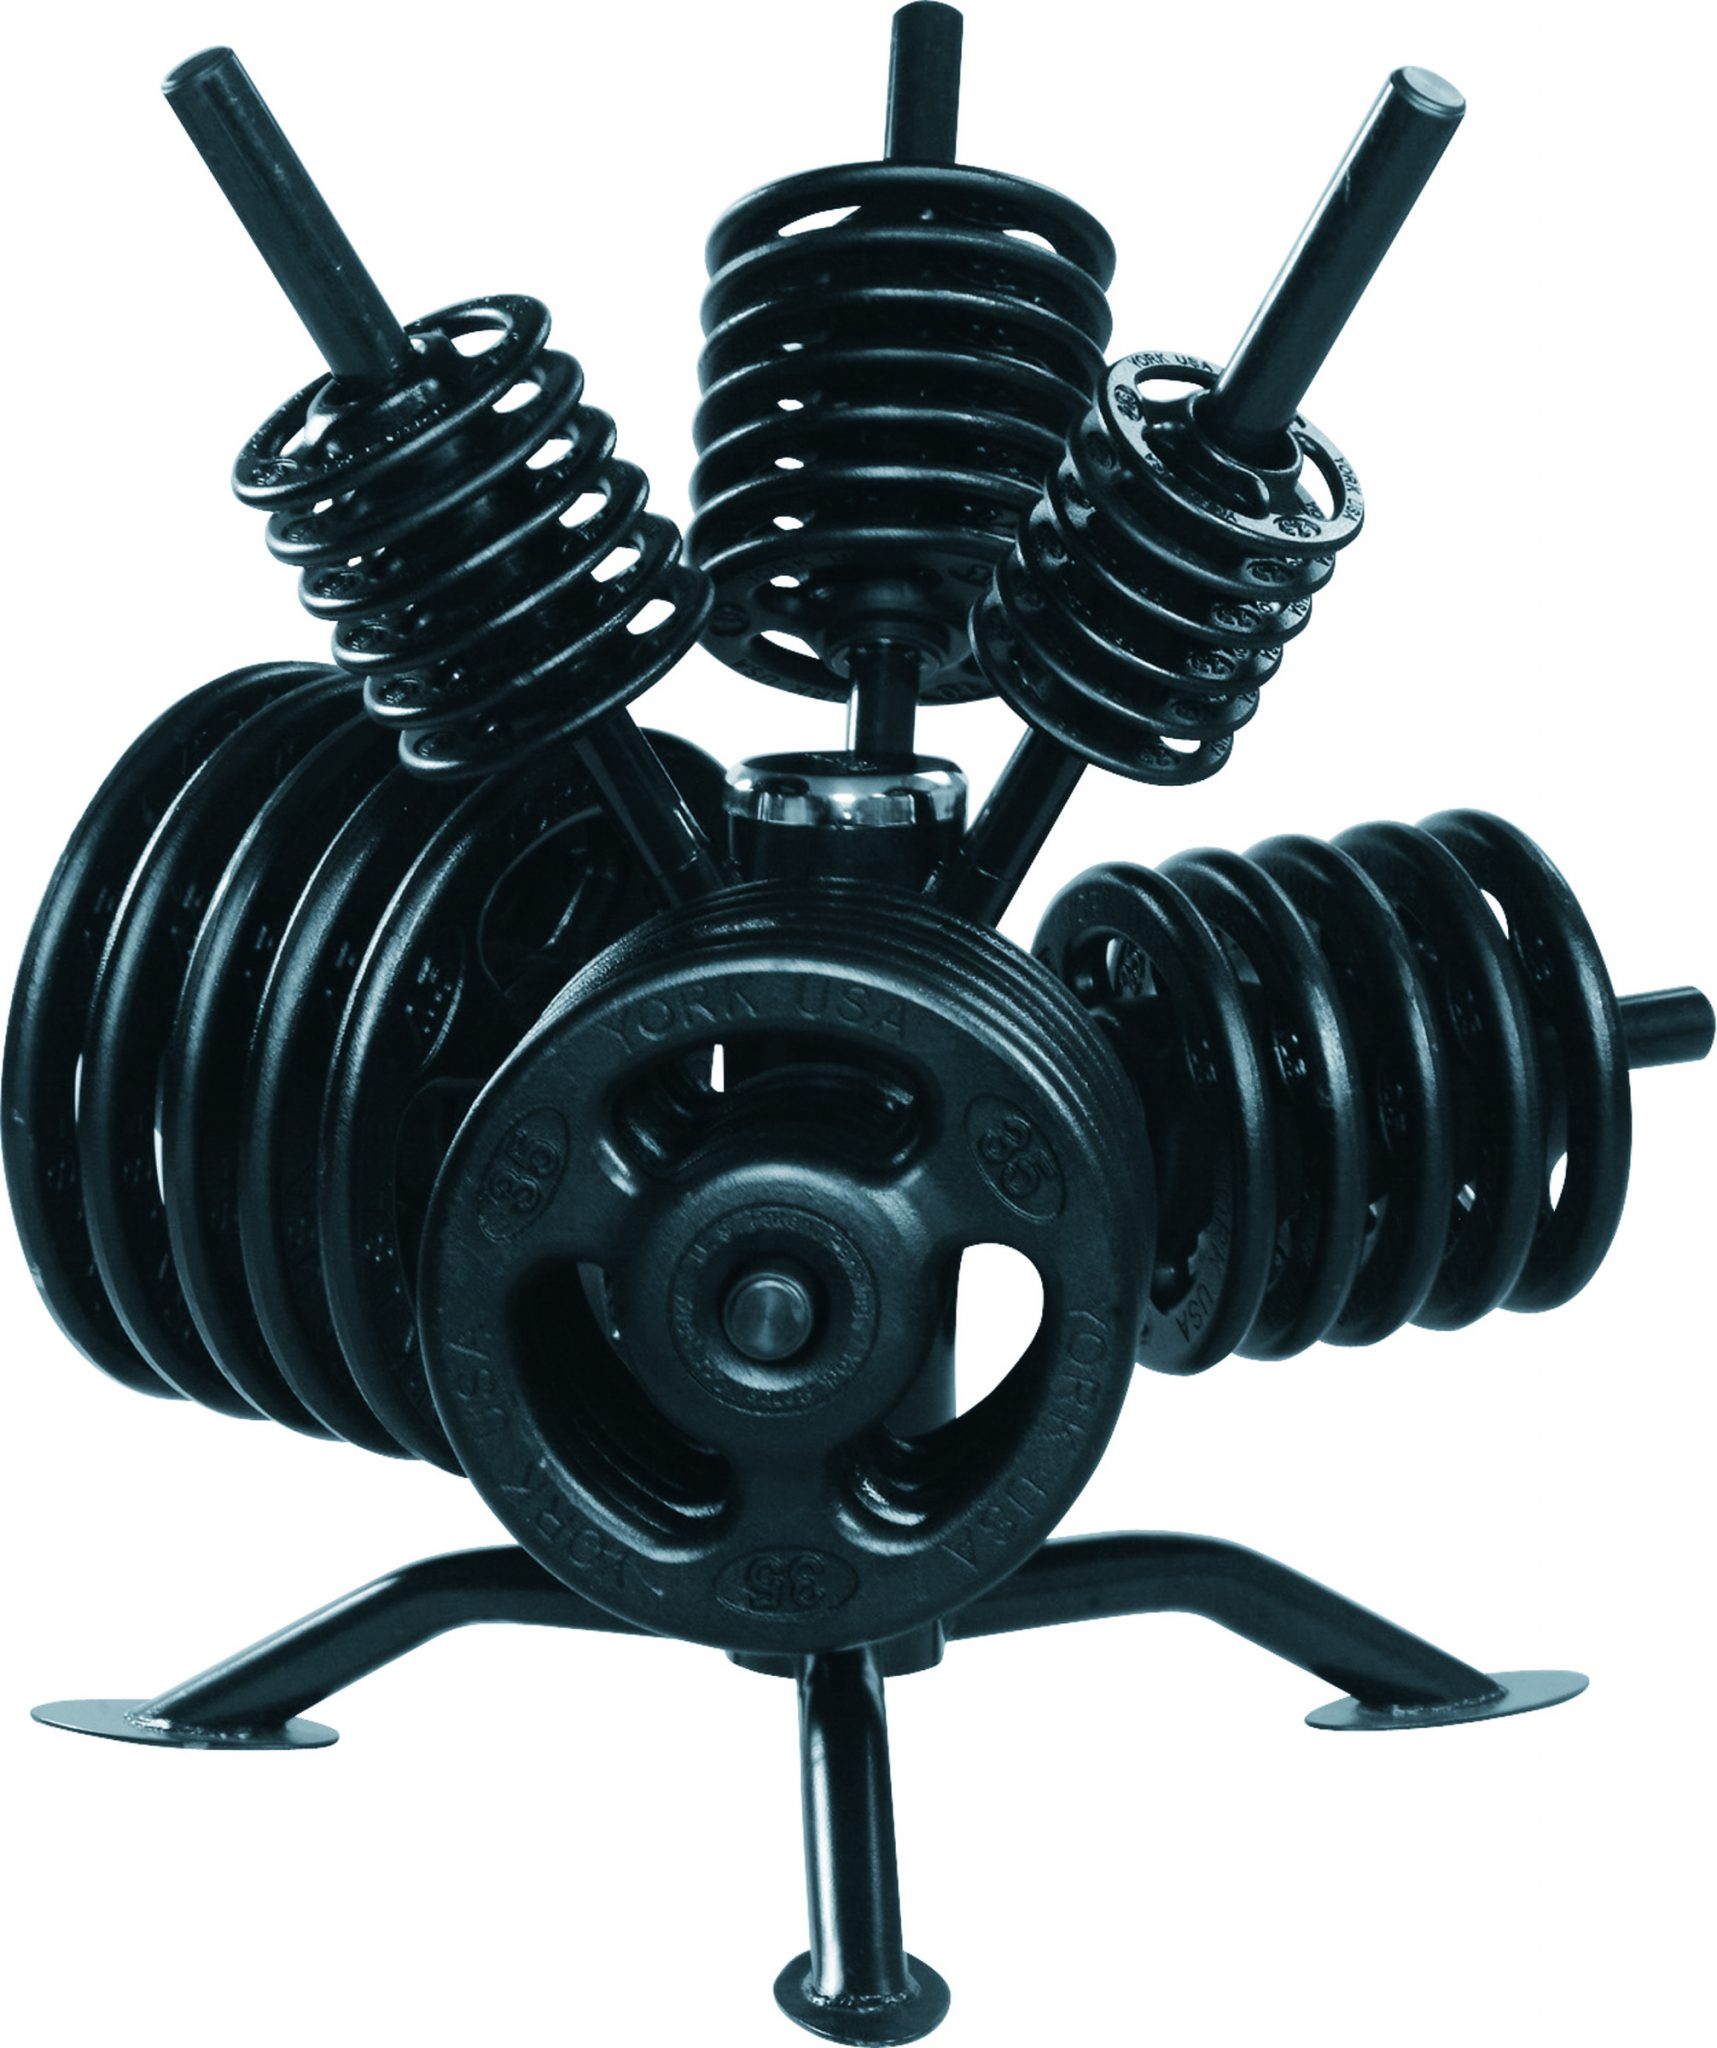 """Spider Rack"" Rotational Olympic Weight Plate Rack"